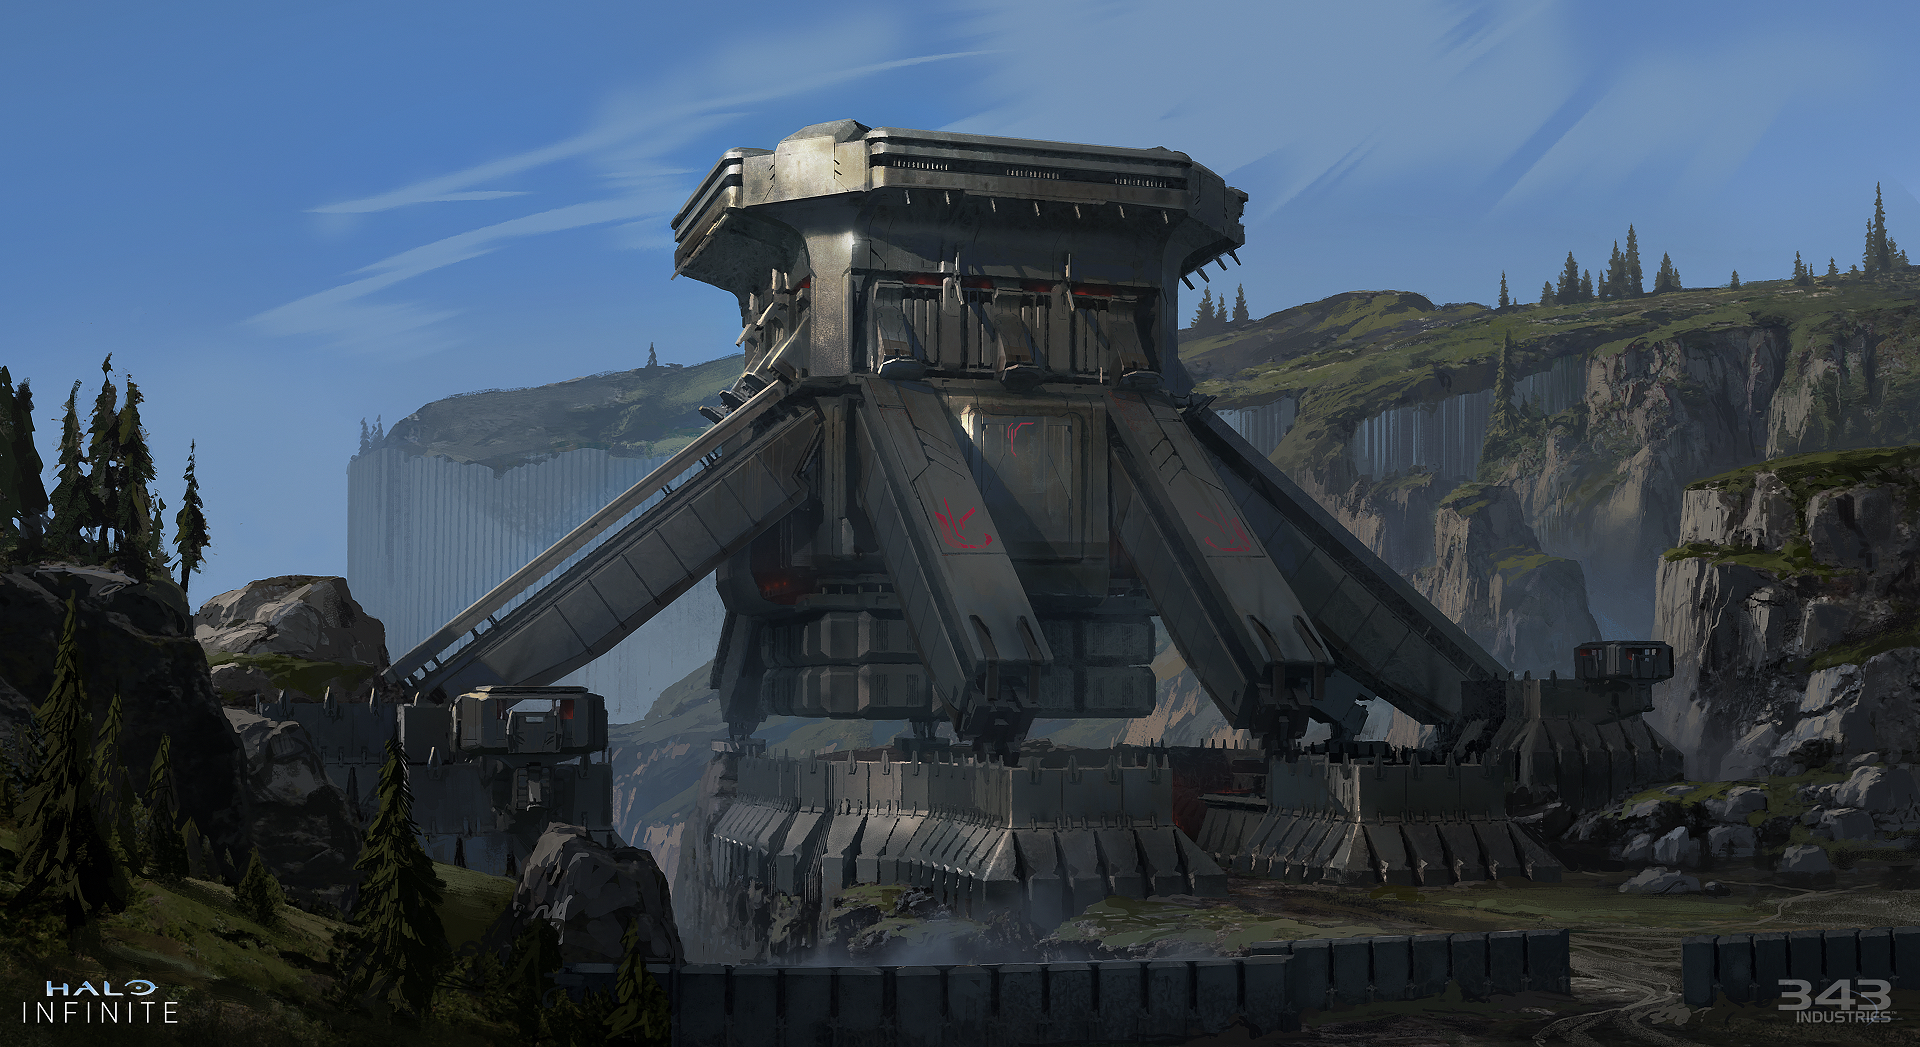 168f20_hi-banished-tower-concept-4k-8455